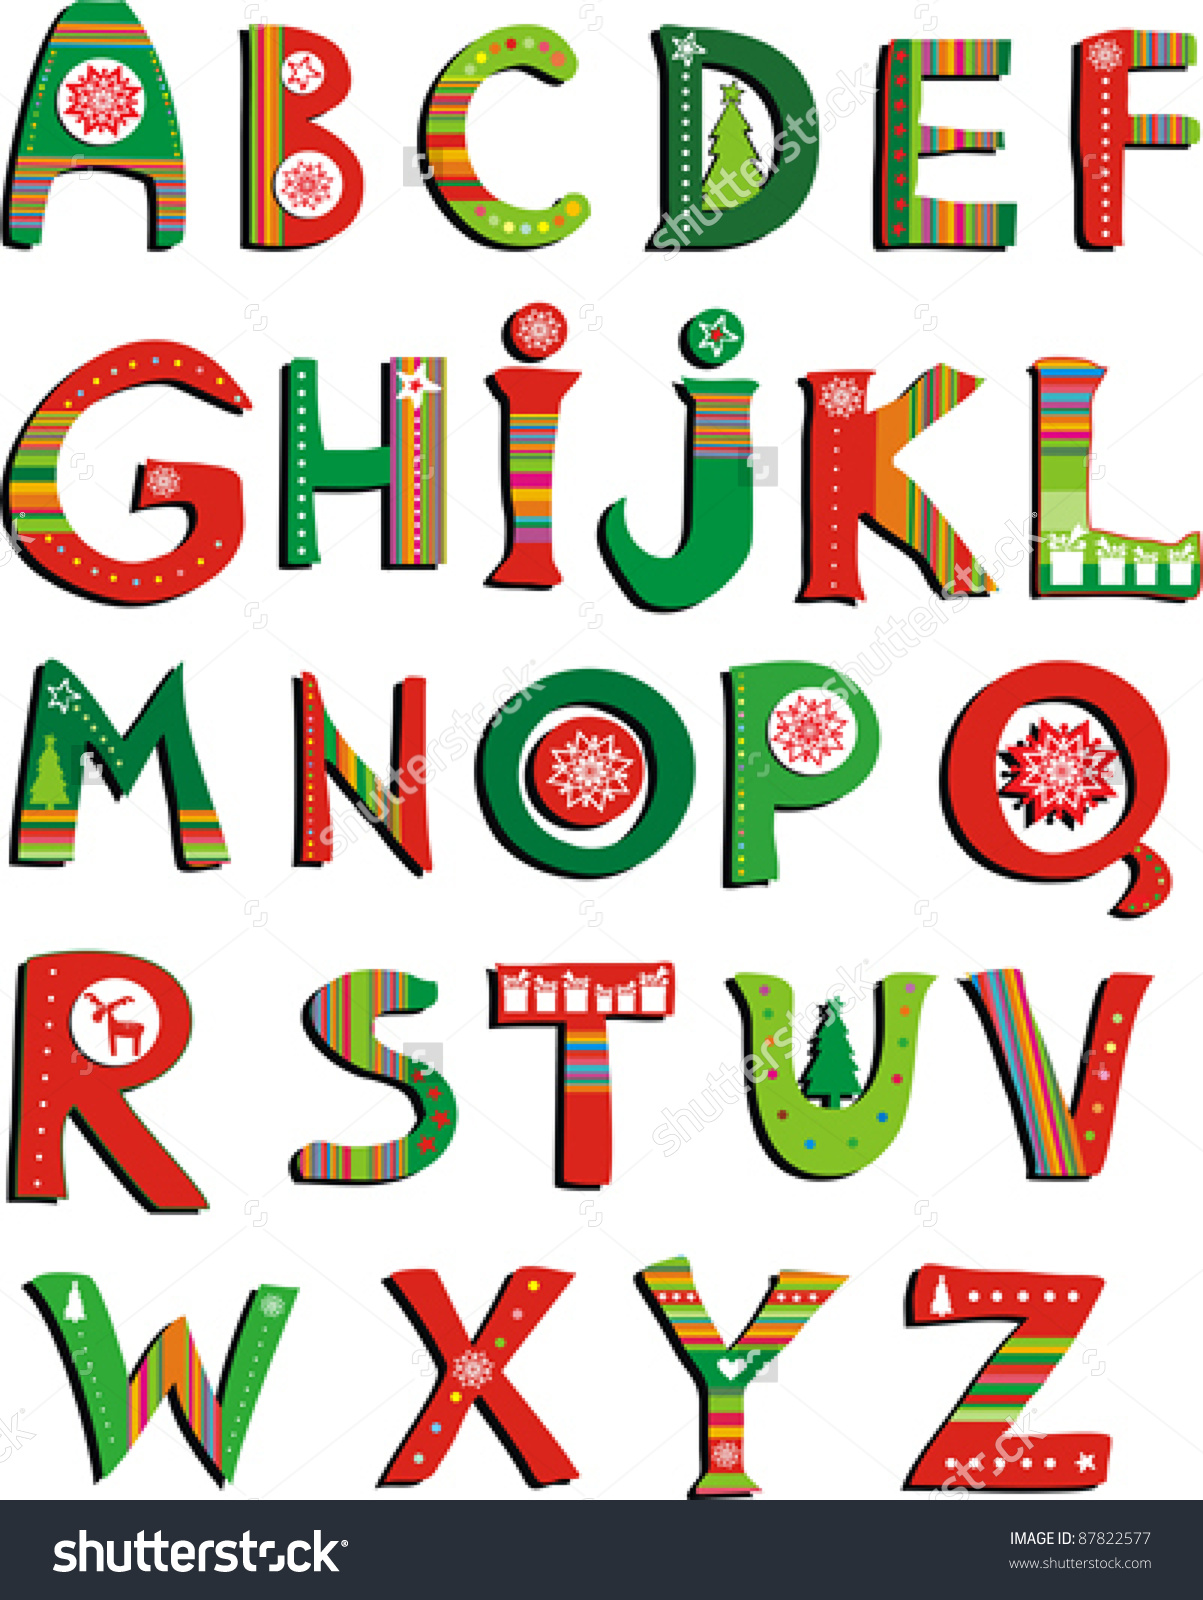 It's just a picture of Current Christmas Letter Clipart